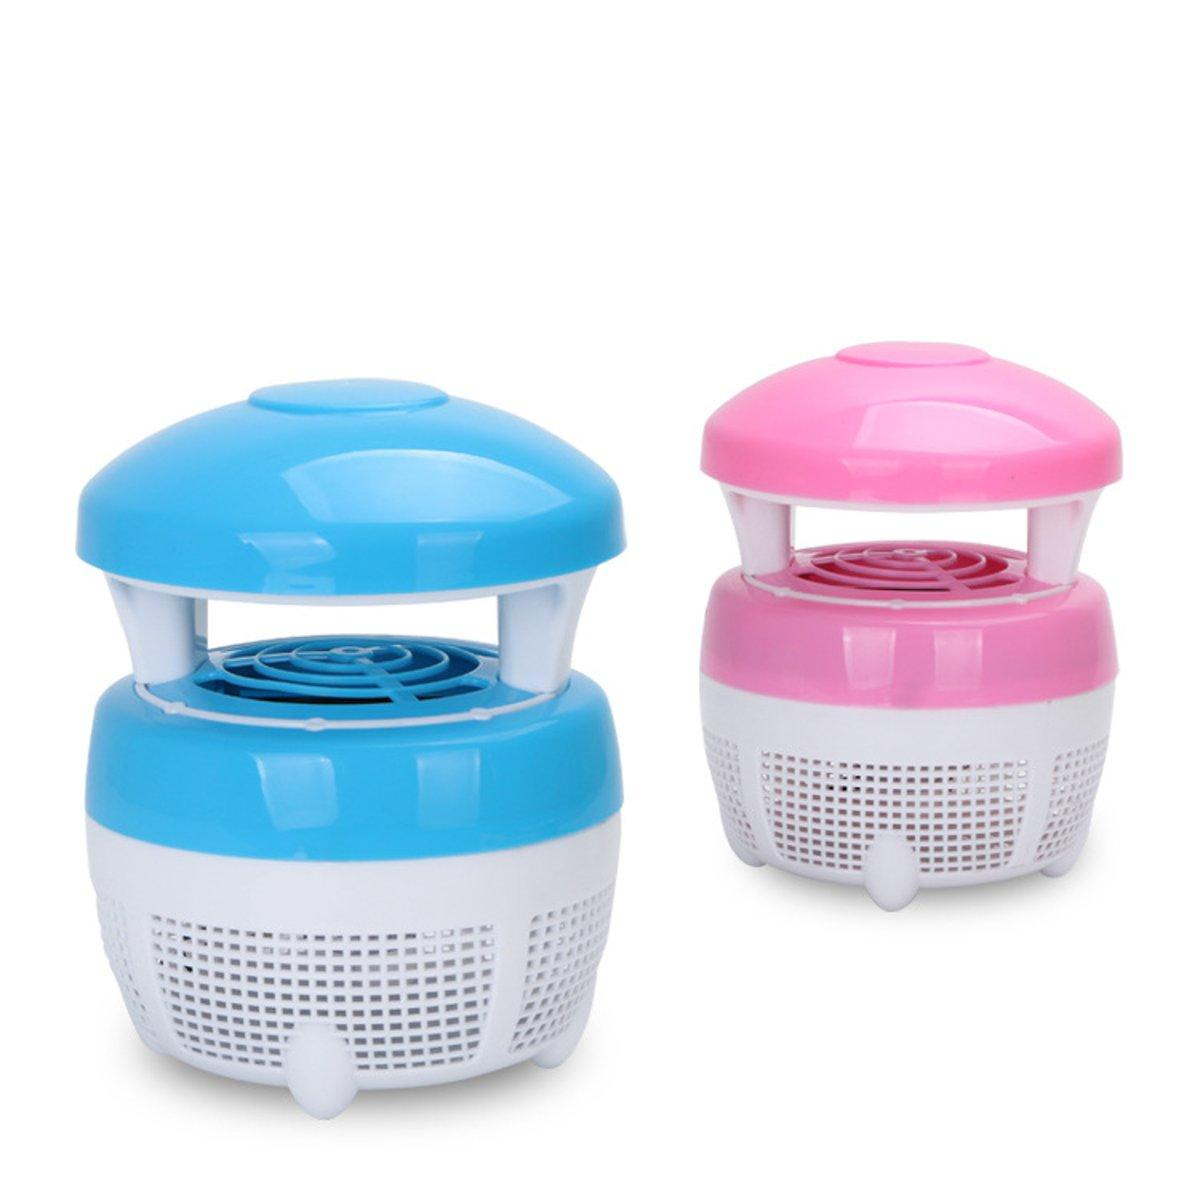 5W LED USB Mosquito Dispeller Repeller Mosquito Killer Lamp Bulb Electric Bug Insect Zapper Pest Trap Light